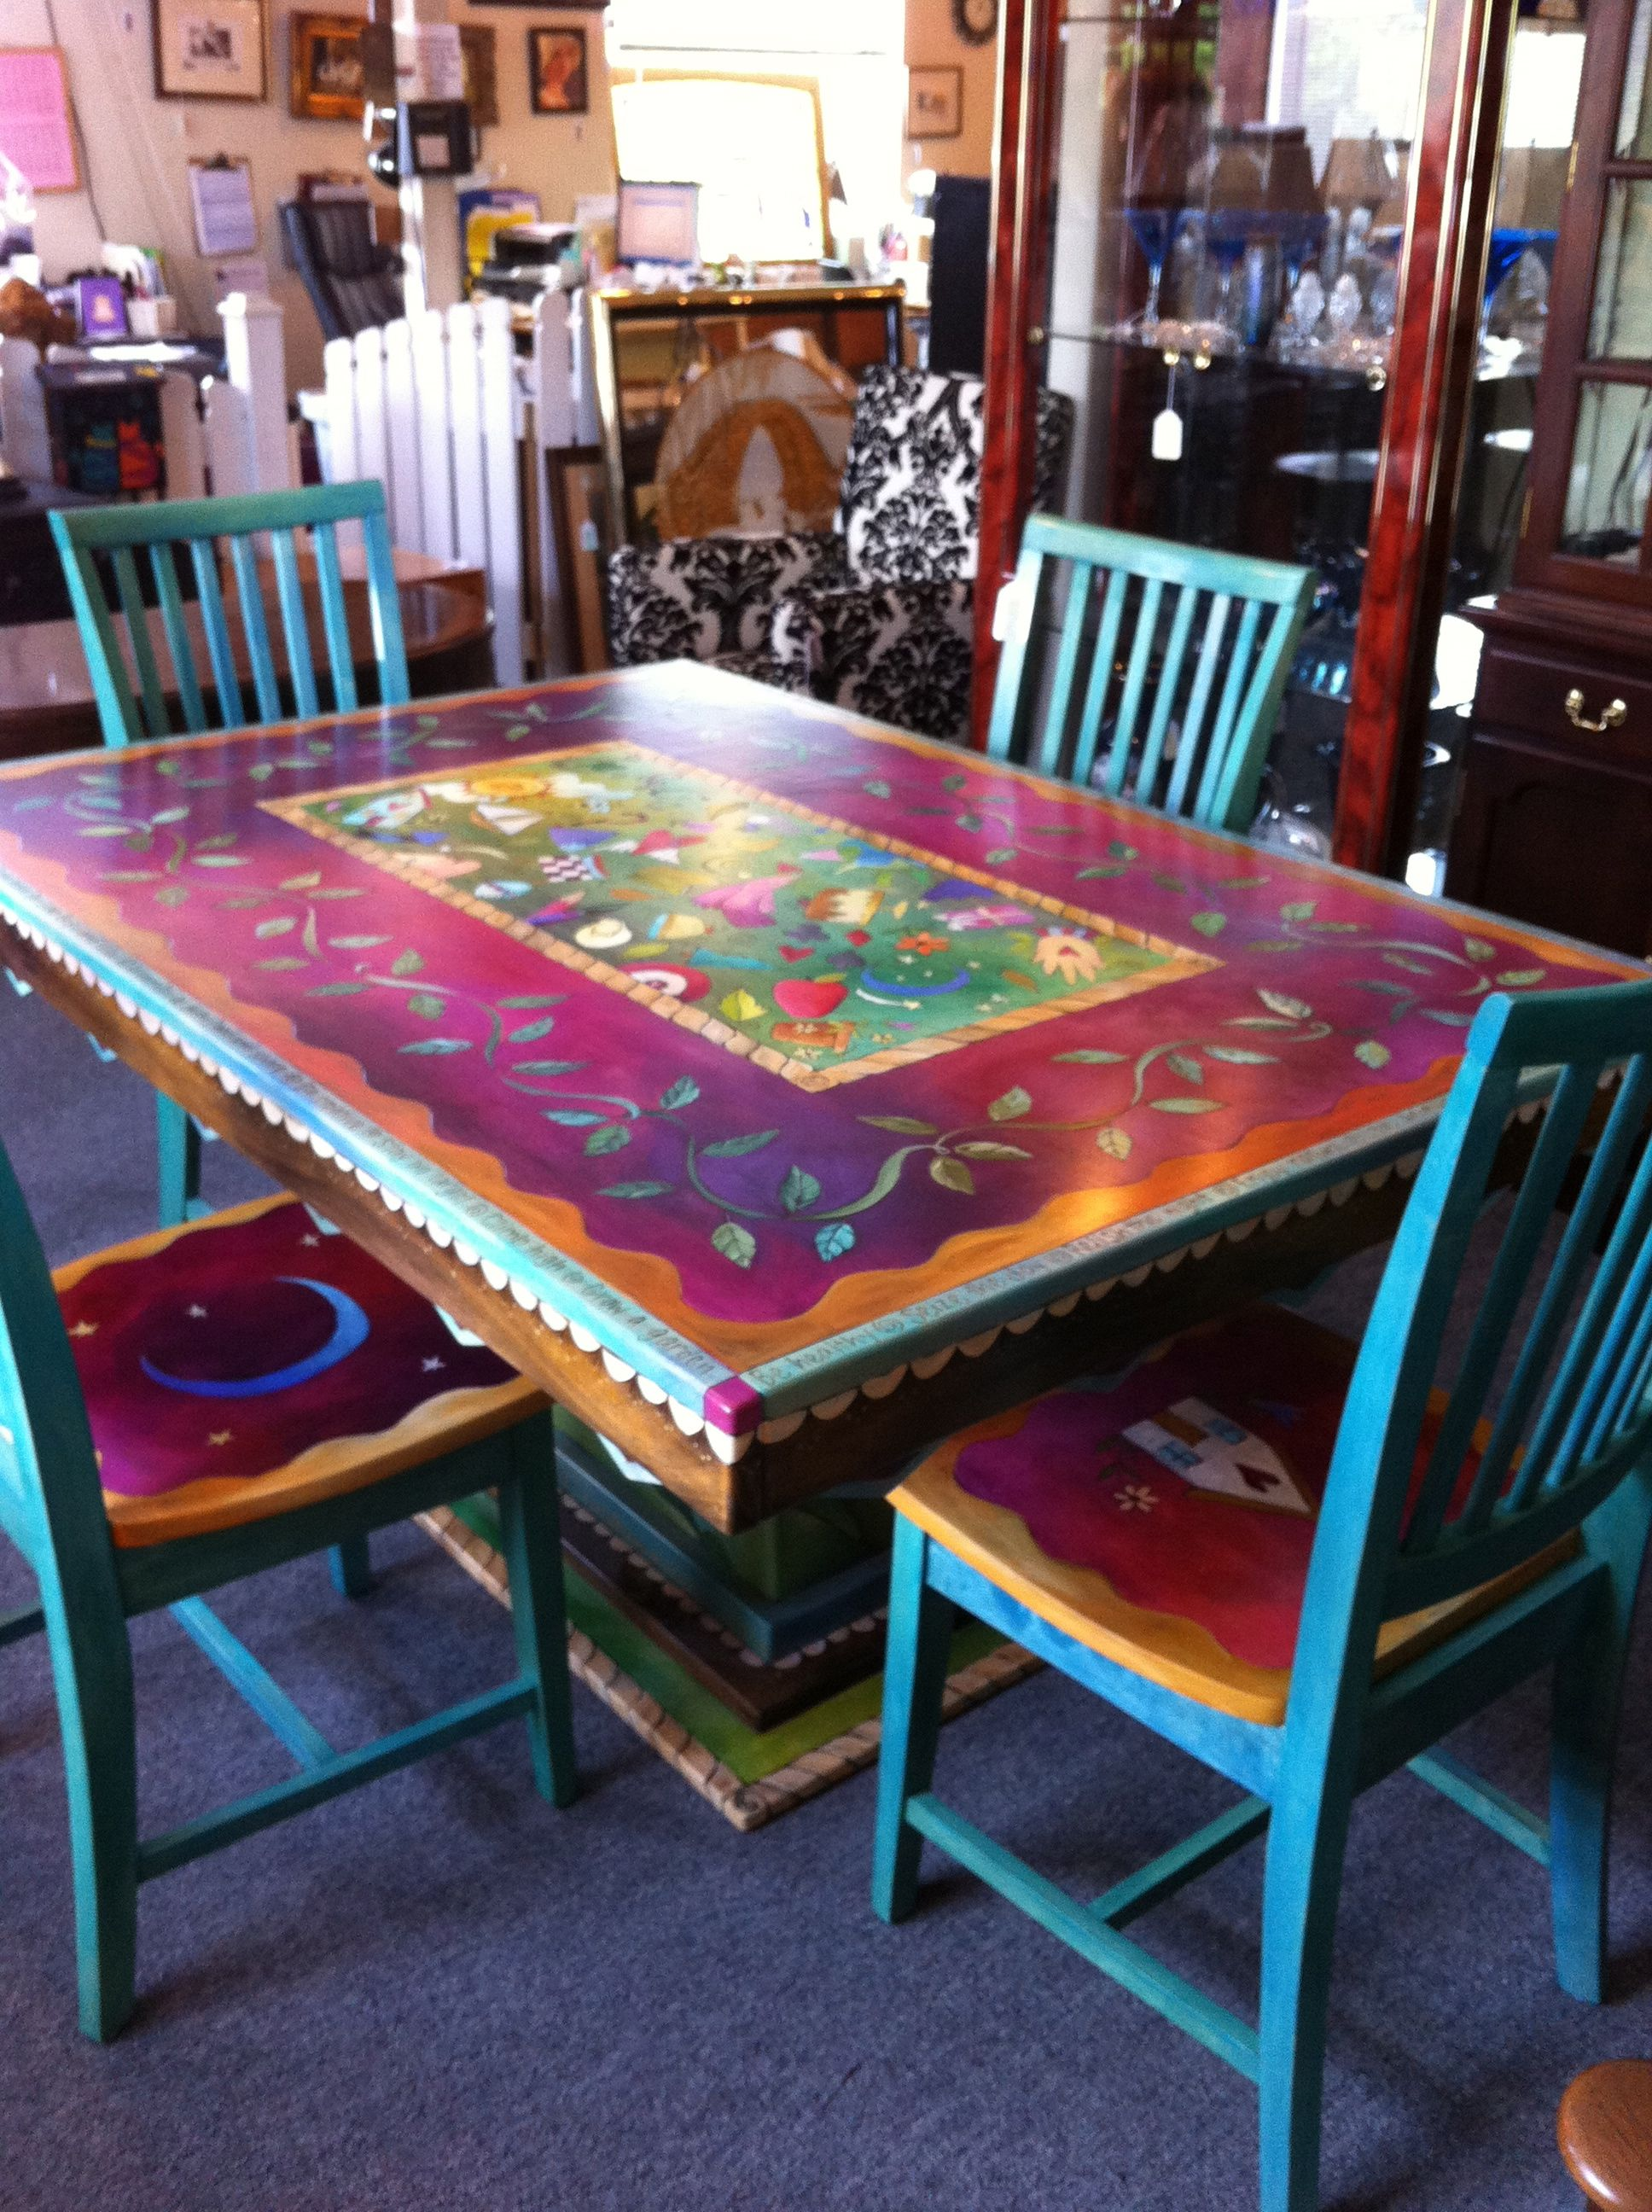 painted furniture ideas tables. gorgeous hand painted table and chairs now i canu0027t decide how to do furniture ideas tables